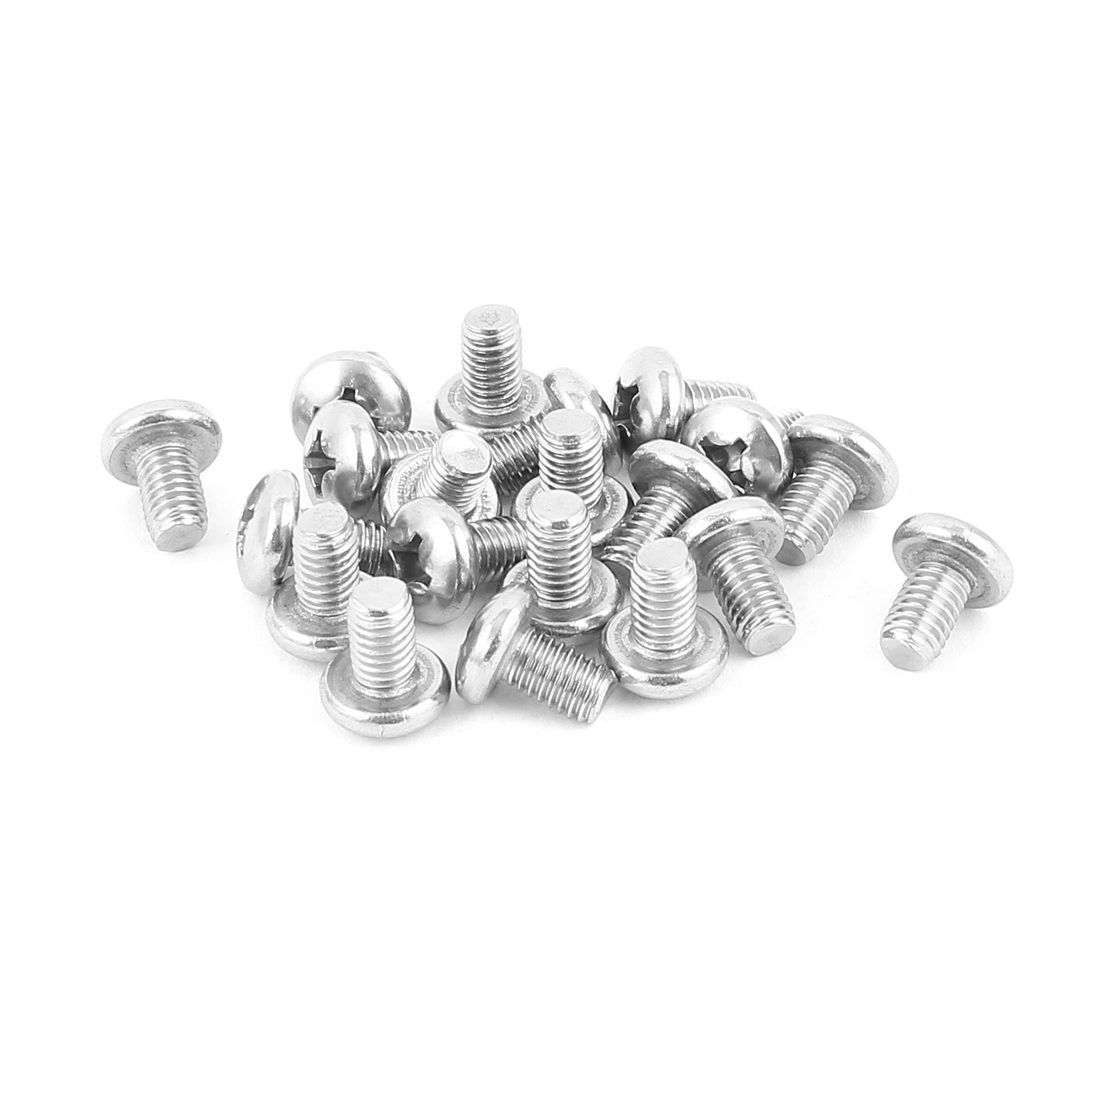 M6x10mm 304 Stainless Steel Round Cross Head Phillips Screws 20pcs